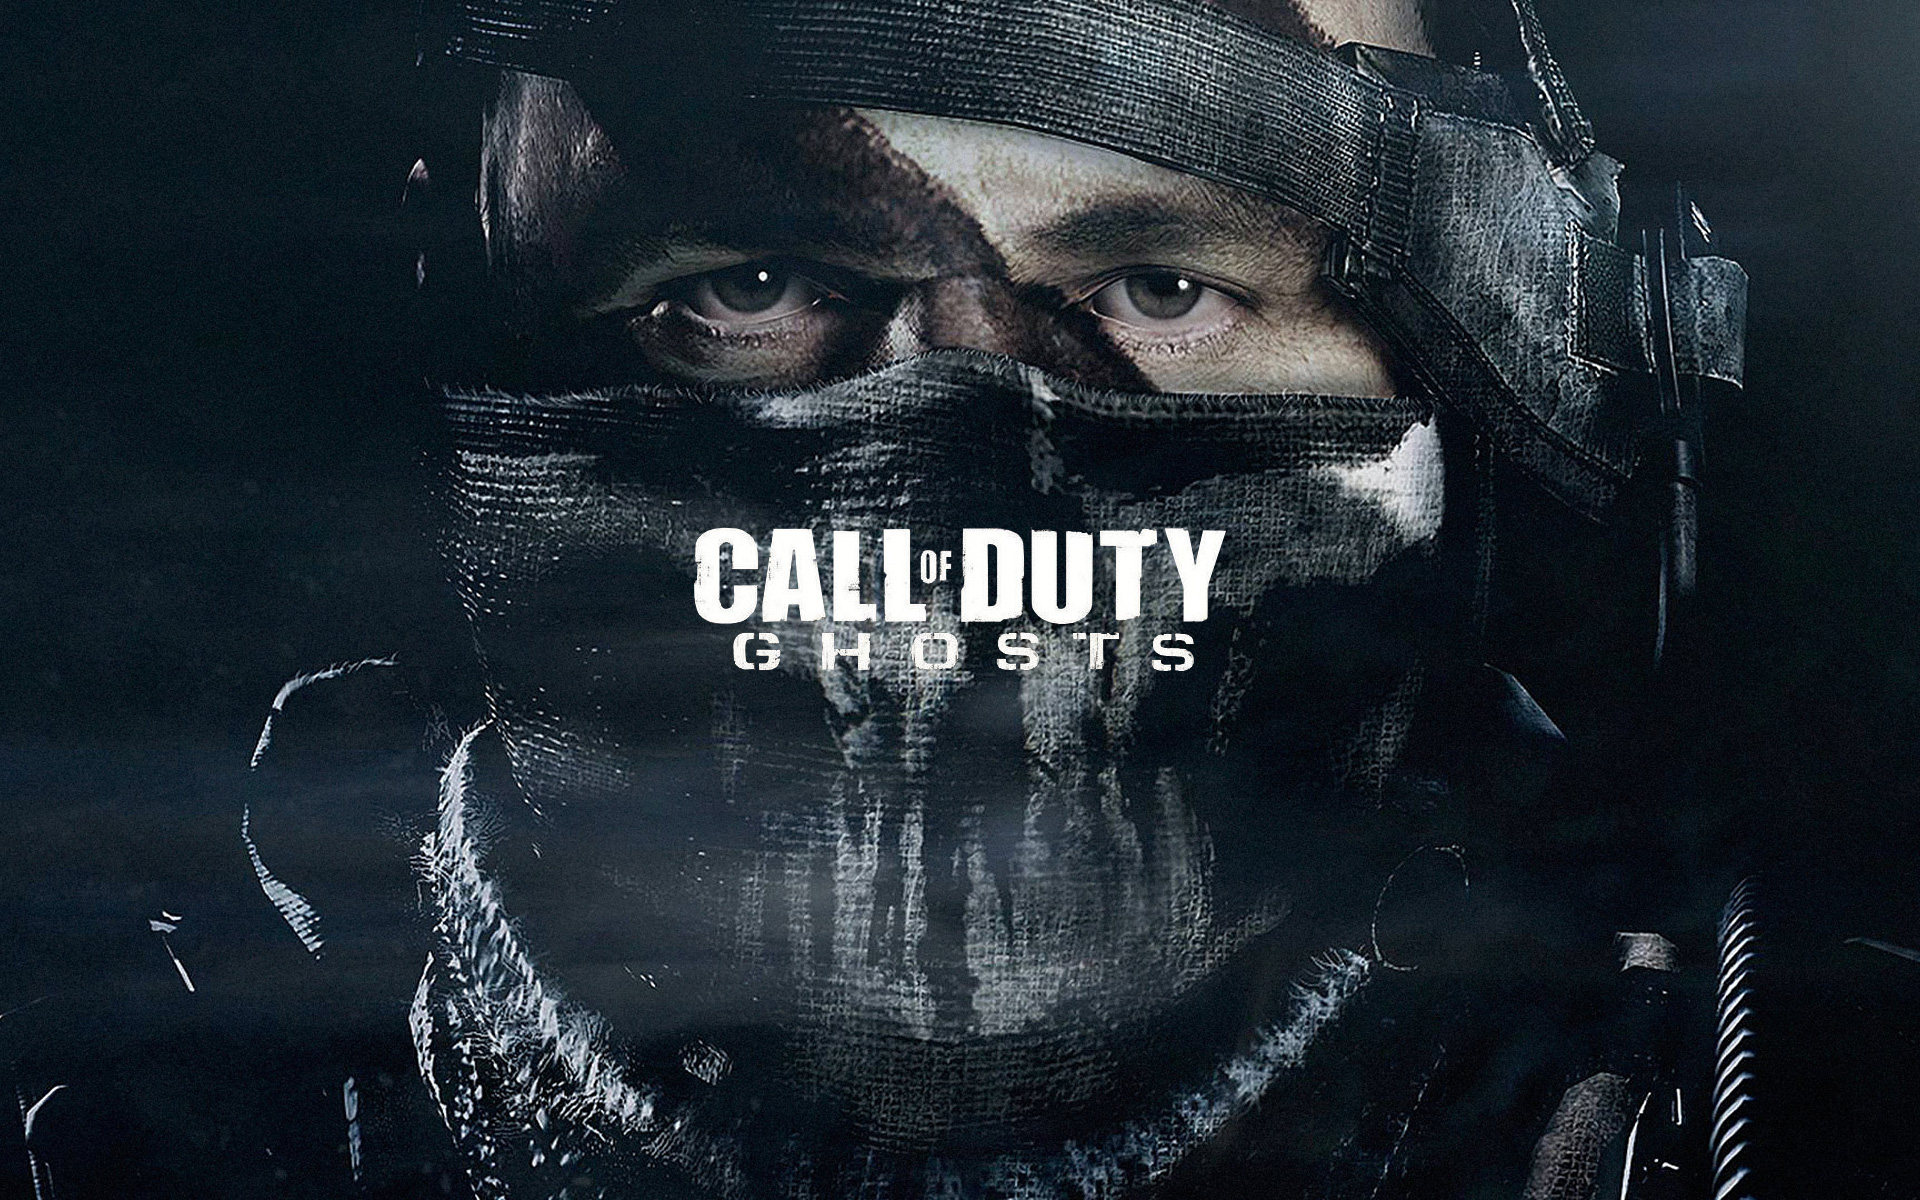 Call of Duty: Ghosts Wallpaper in 1920x1200